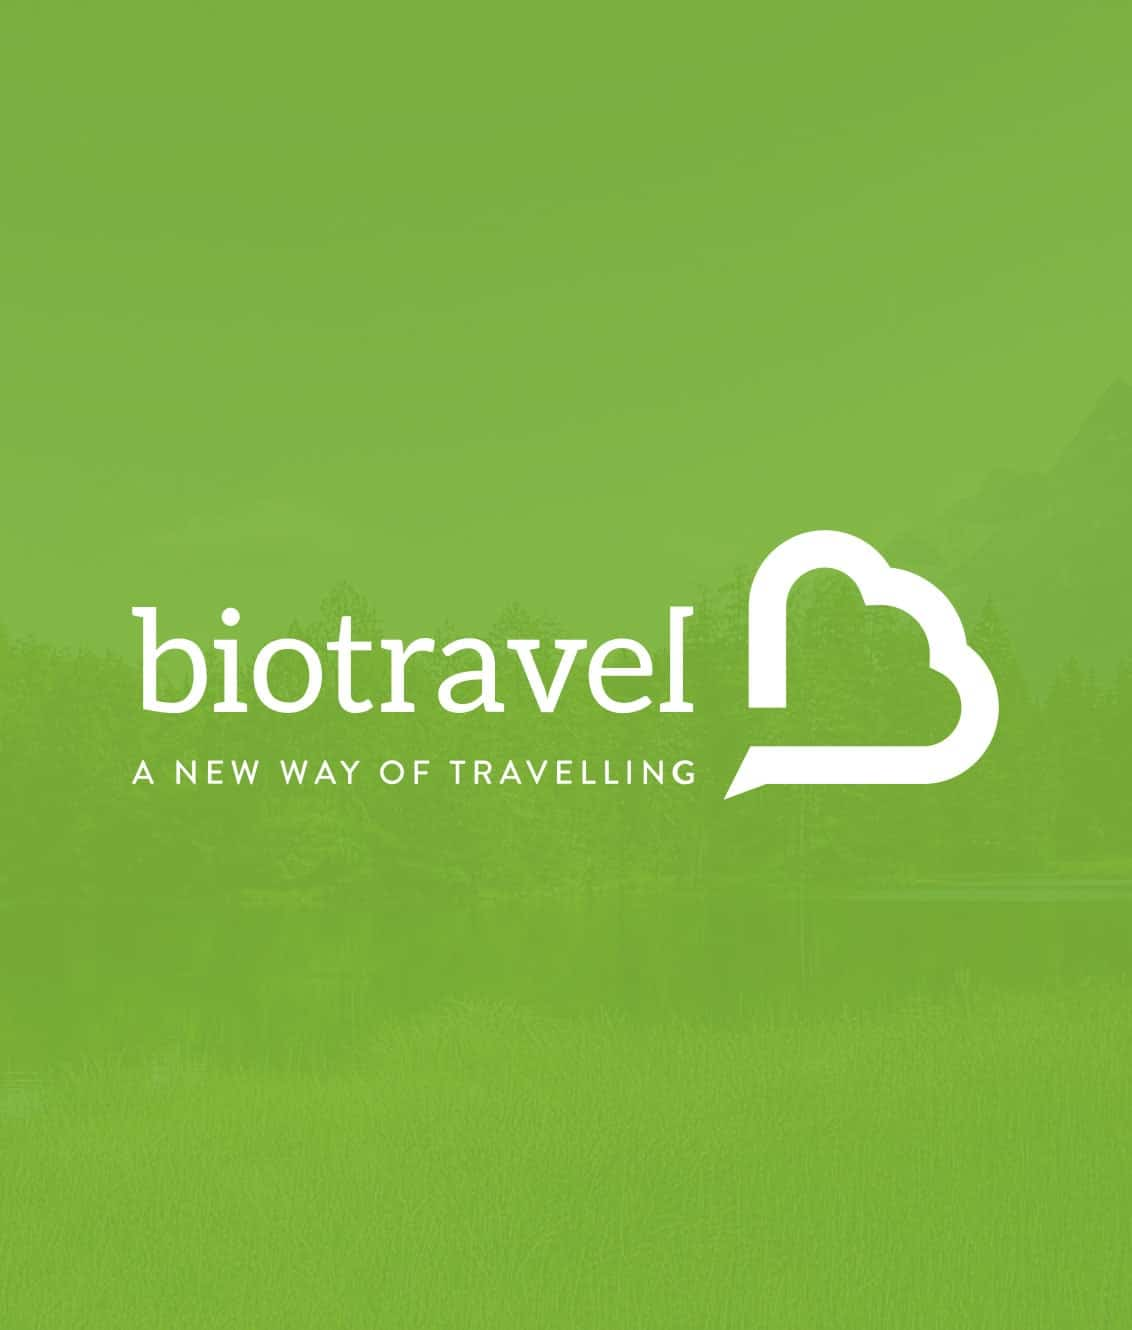 biotravel wide tall teroro agency - Biotravel